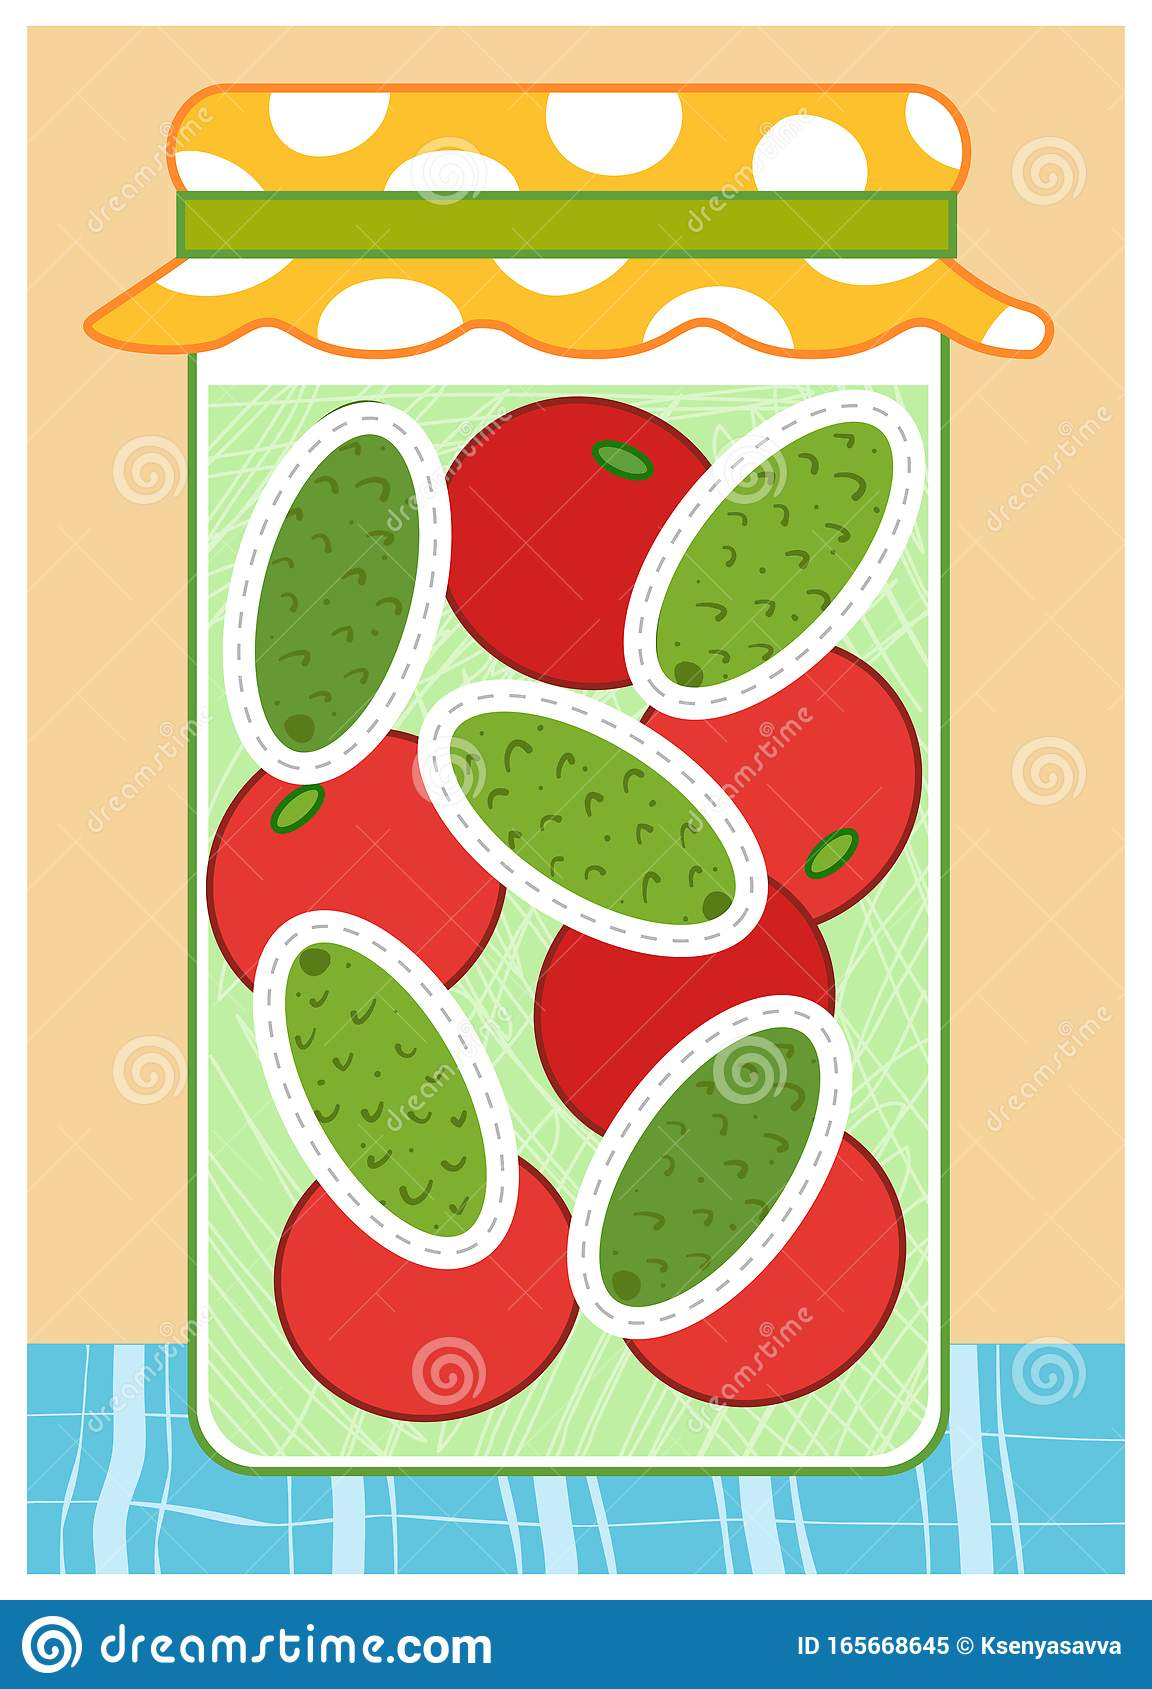 Trace The Dotted Lines In The Shape Of Ovals Cucumbers